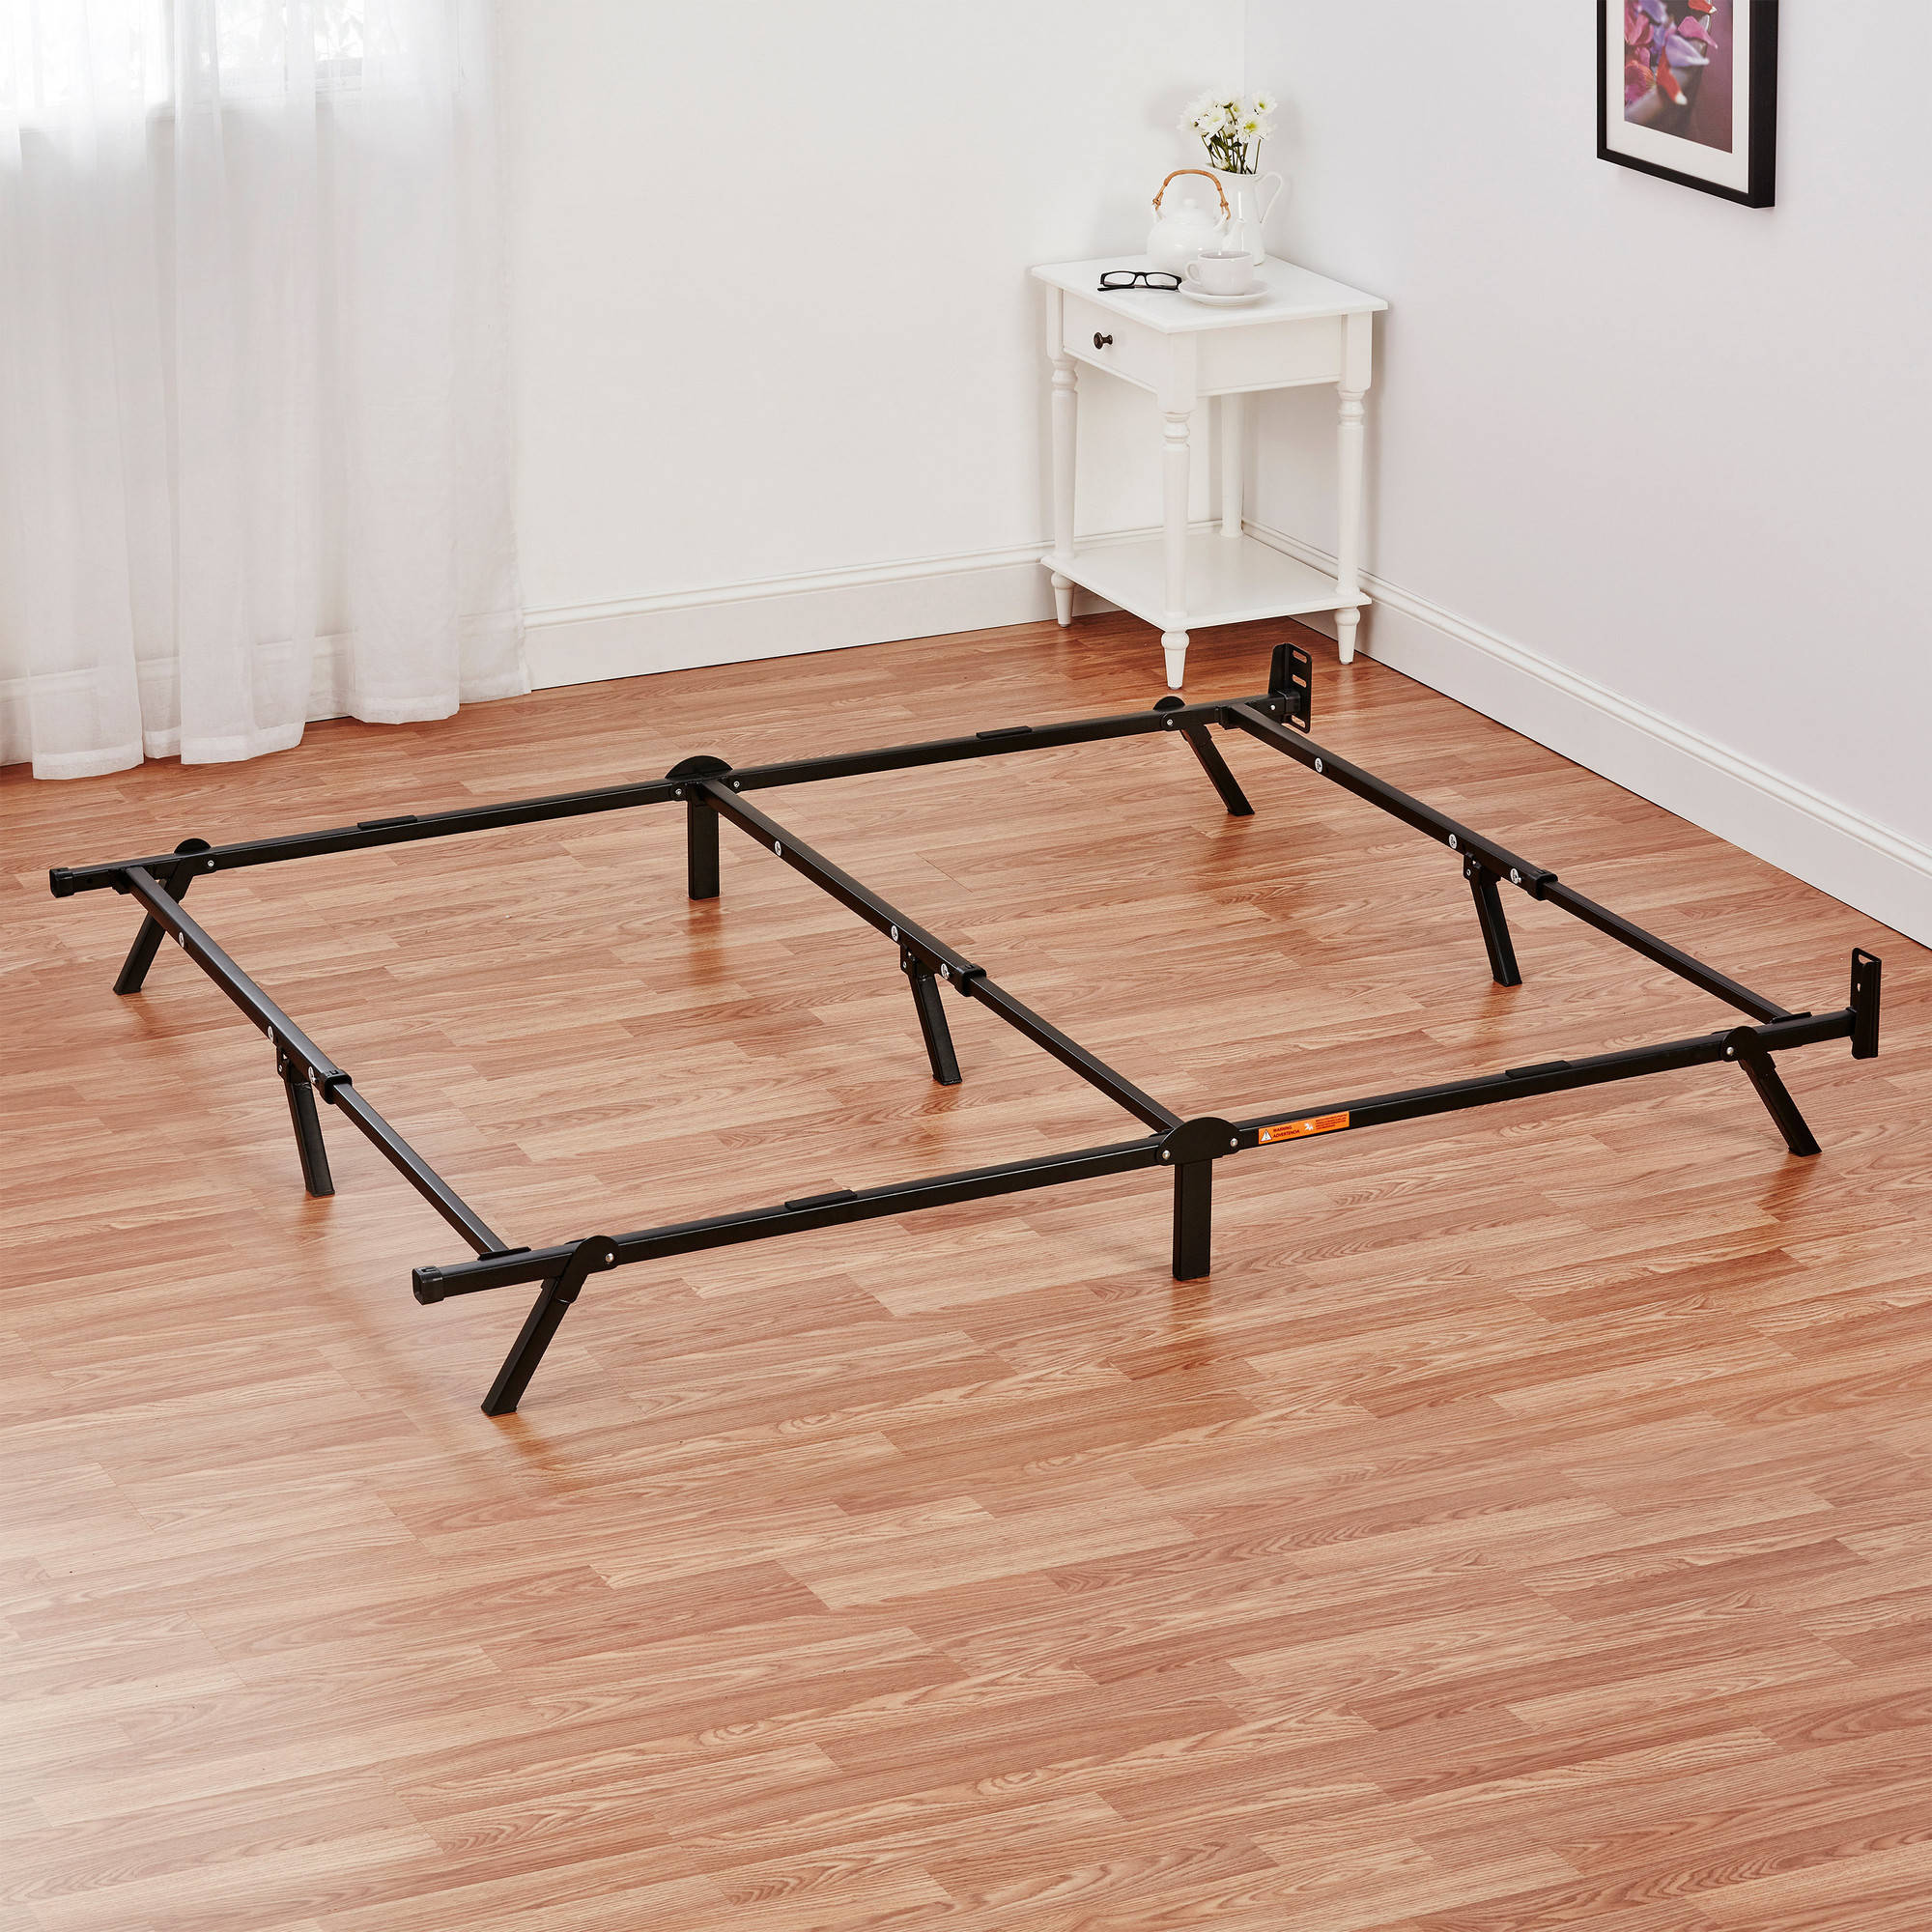 "Metal Bed Frames mainstays 7"" adjustable metal bed frame, easy no-tools assembly"